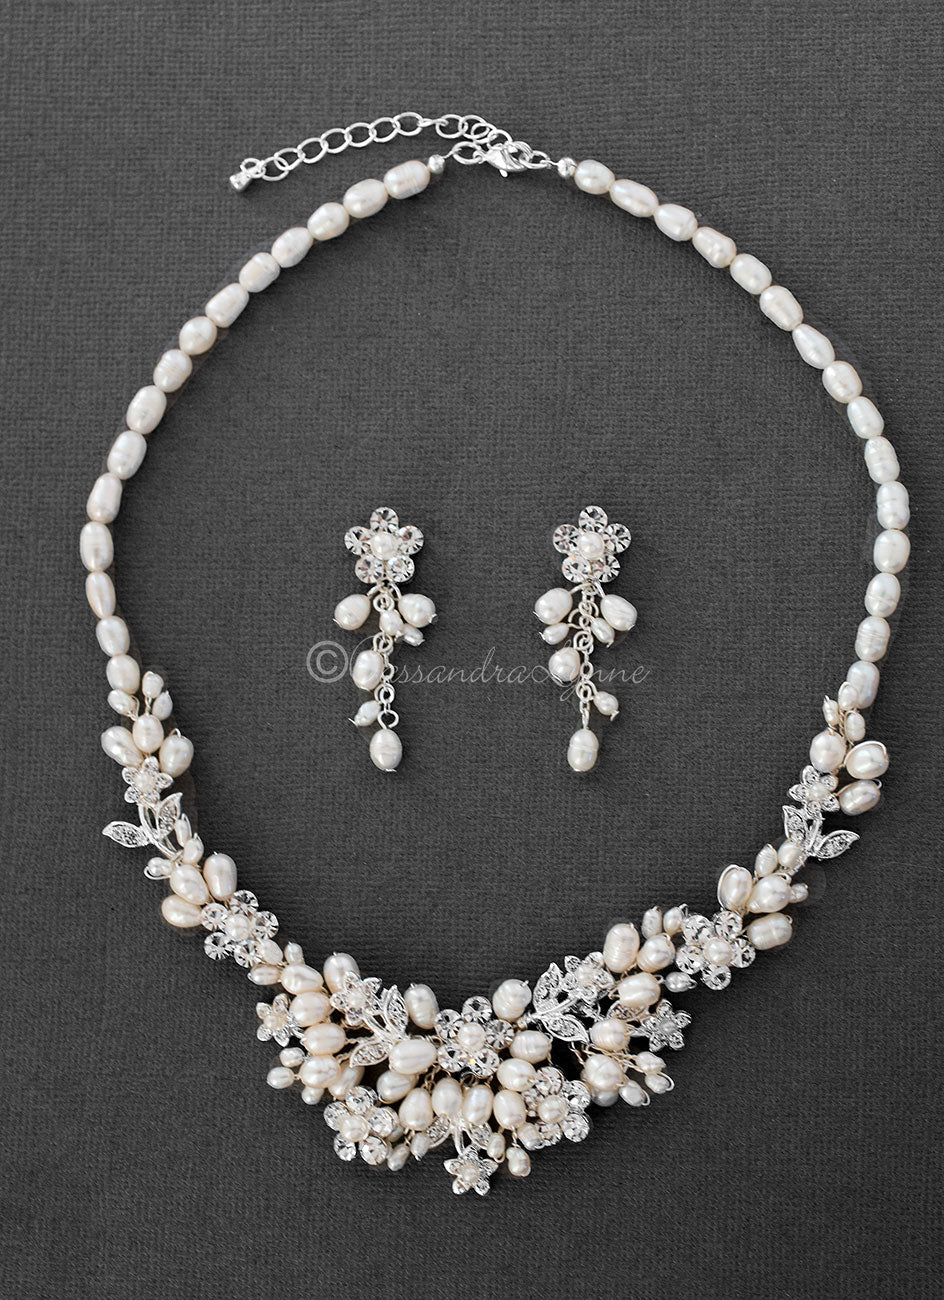 Vintage style jewelry Bridal jewelry Set Crystal and pearl jewelry Pearl necklace set for bride Rose gold Bridal necklace and earrings